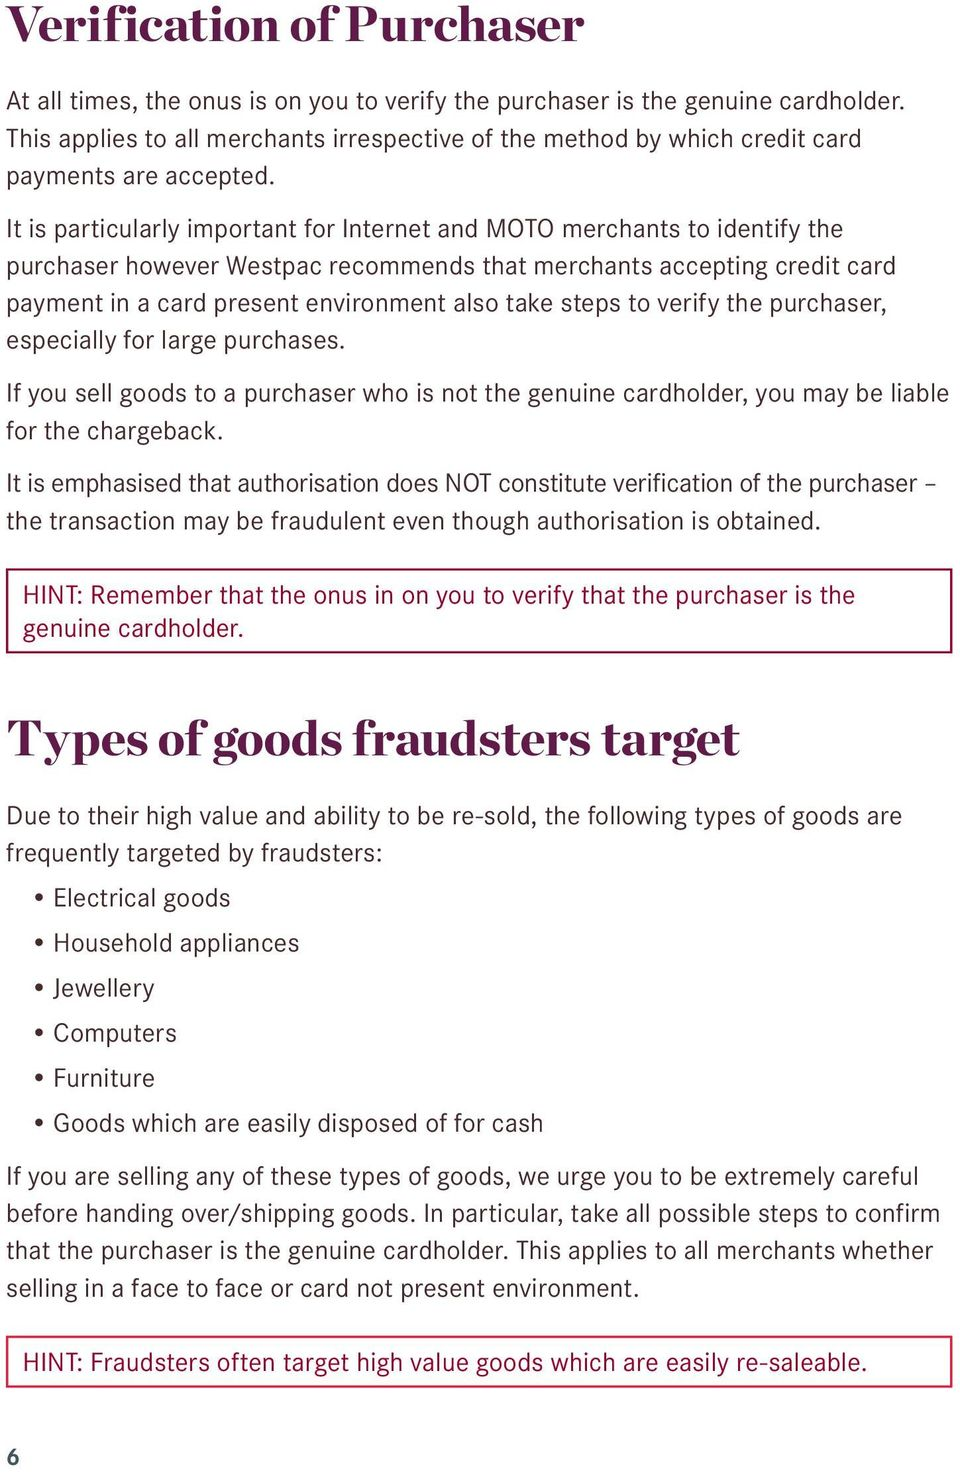 It is particularly important for Internet and MOTO merchants to identify the purchaser however Westpac recommends that merchants accepting credit card payment in a card present environment also take